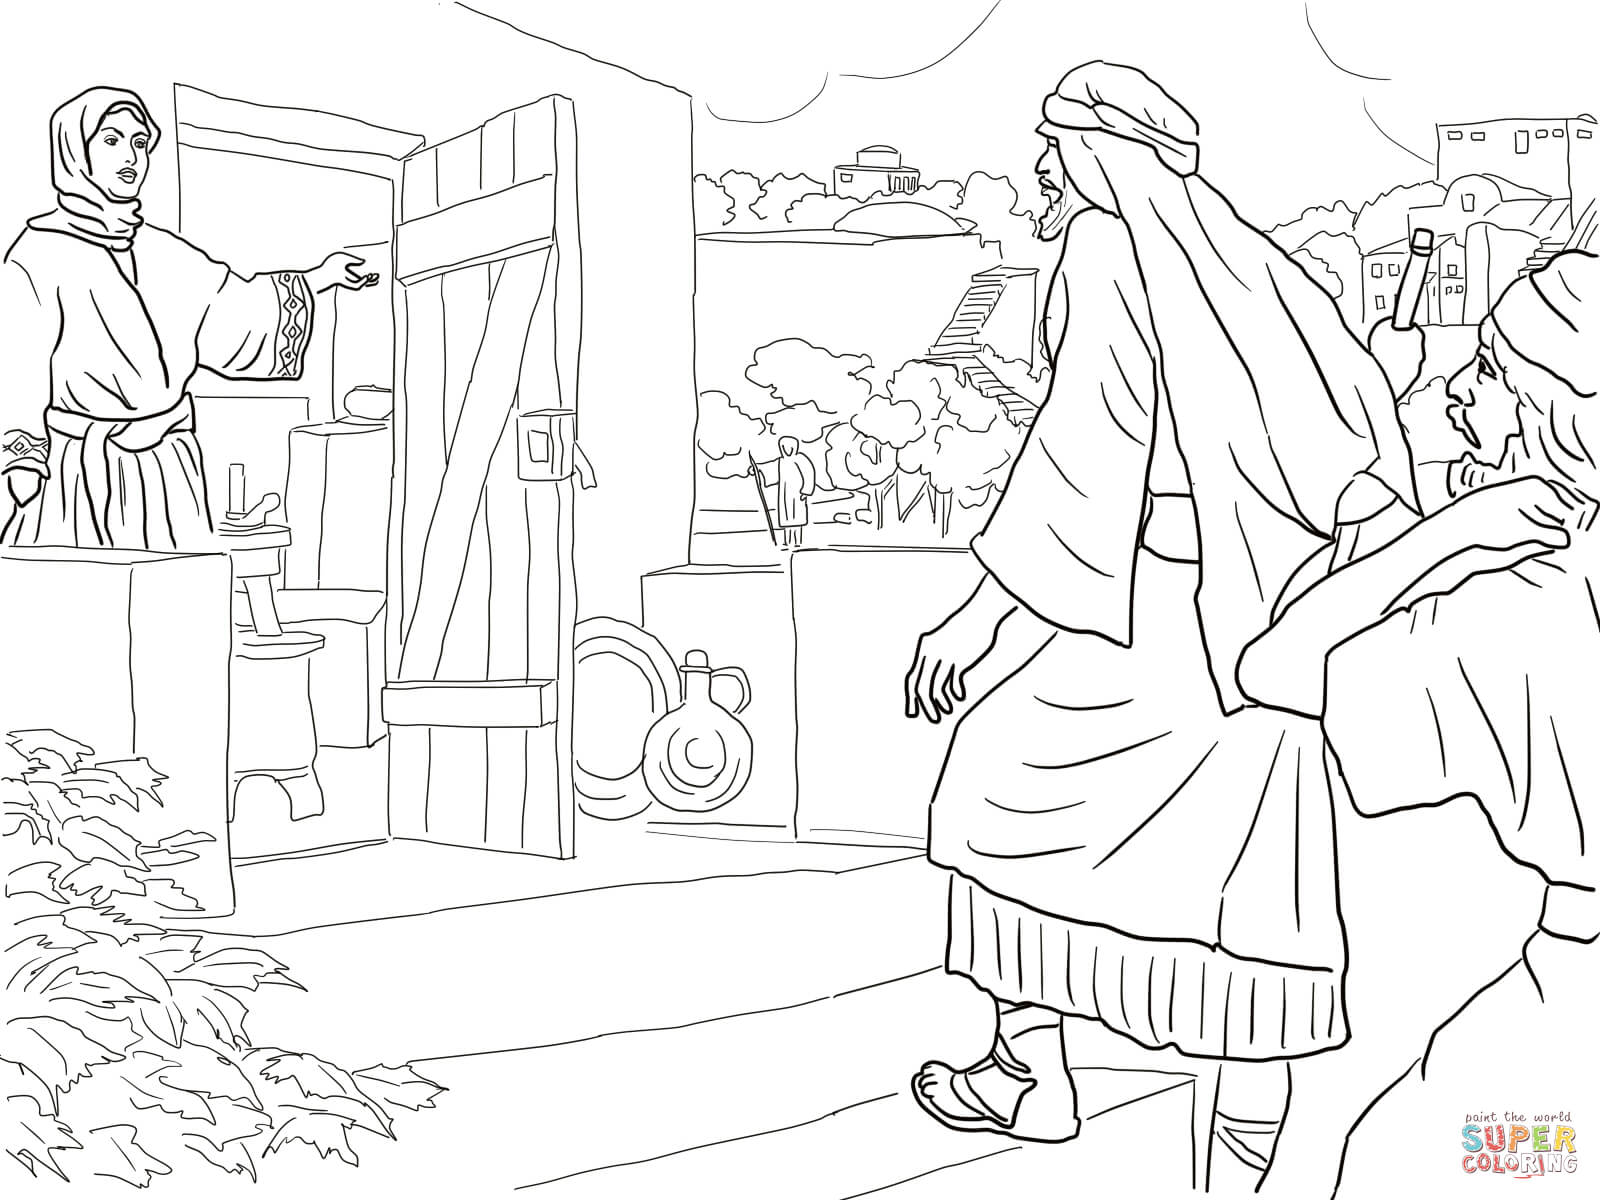 Uncategorized Elisha Coloring Page new room built for elisha coloring page free printable coloring